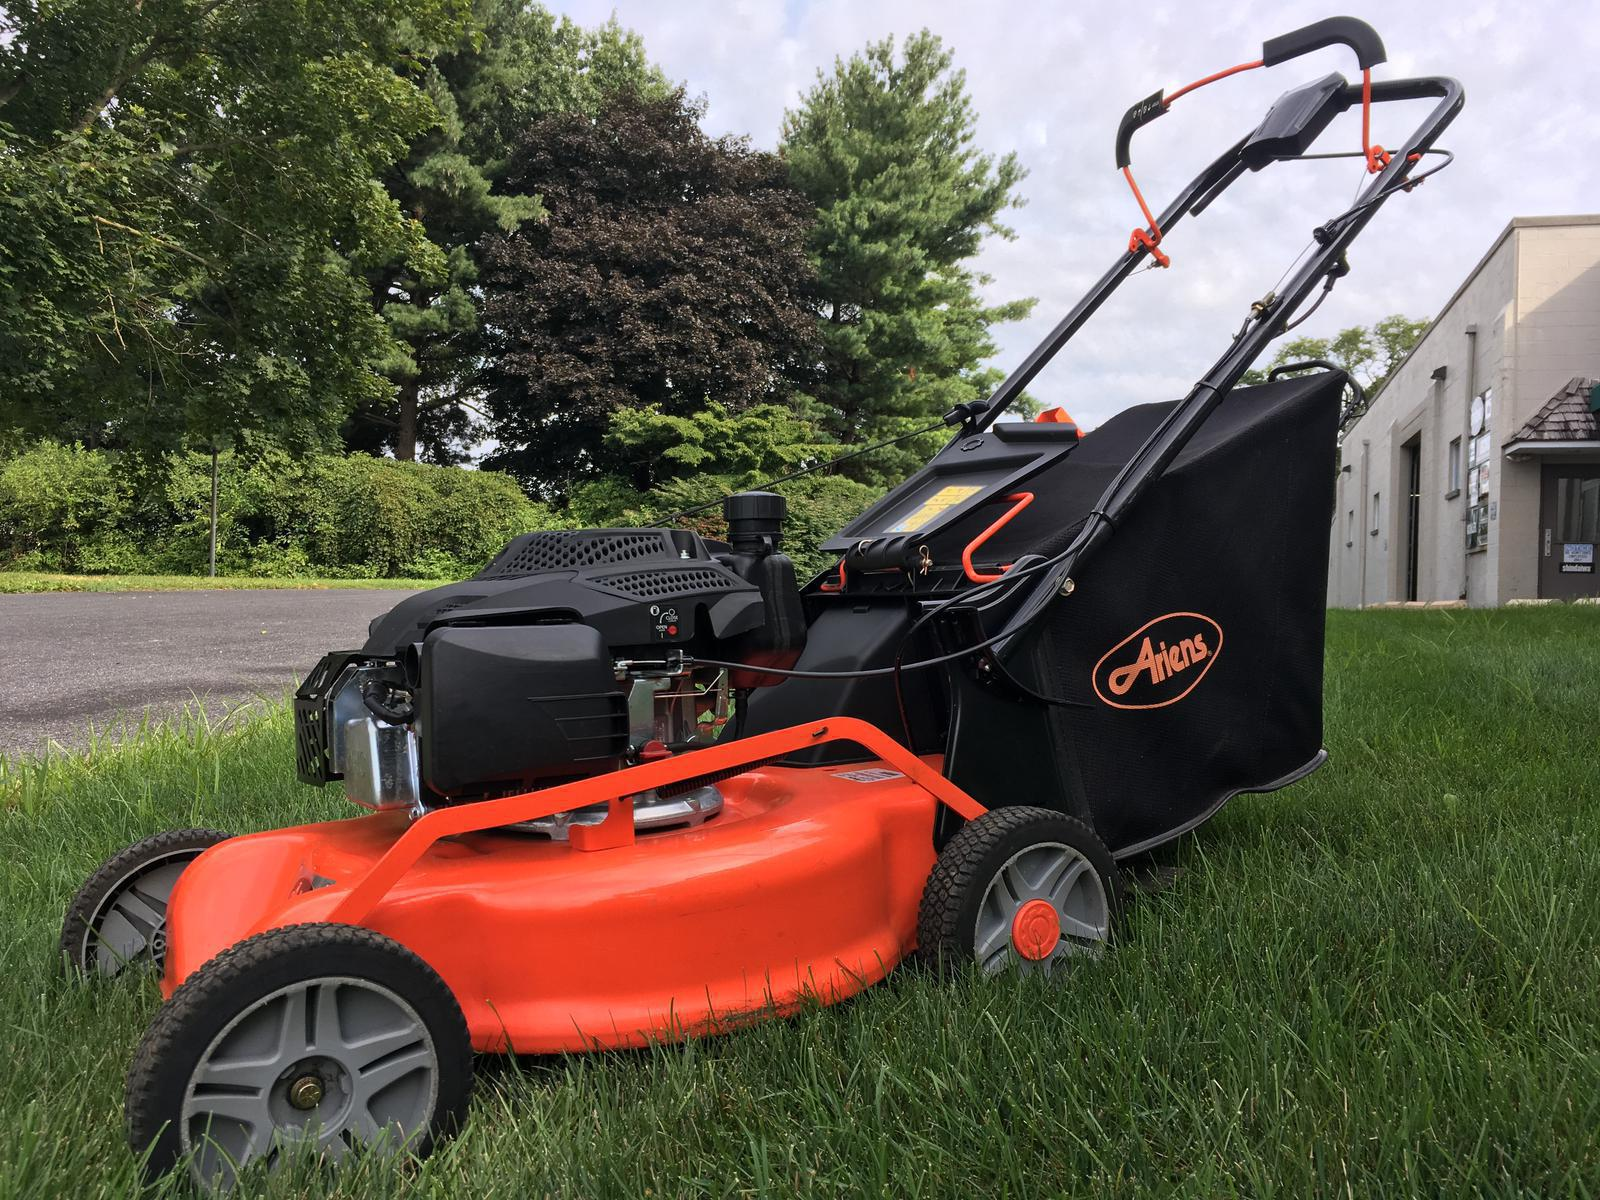 Inventory from Ariens and Troy-Bilt Musser's Lawn & Garden